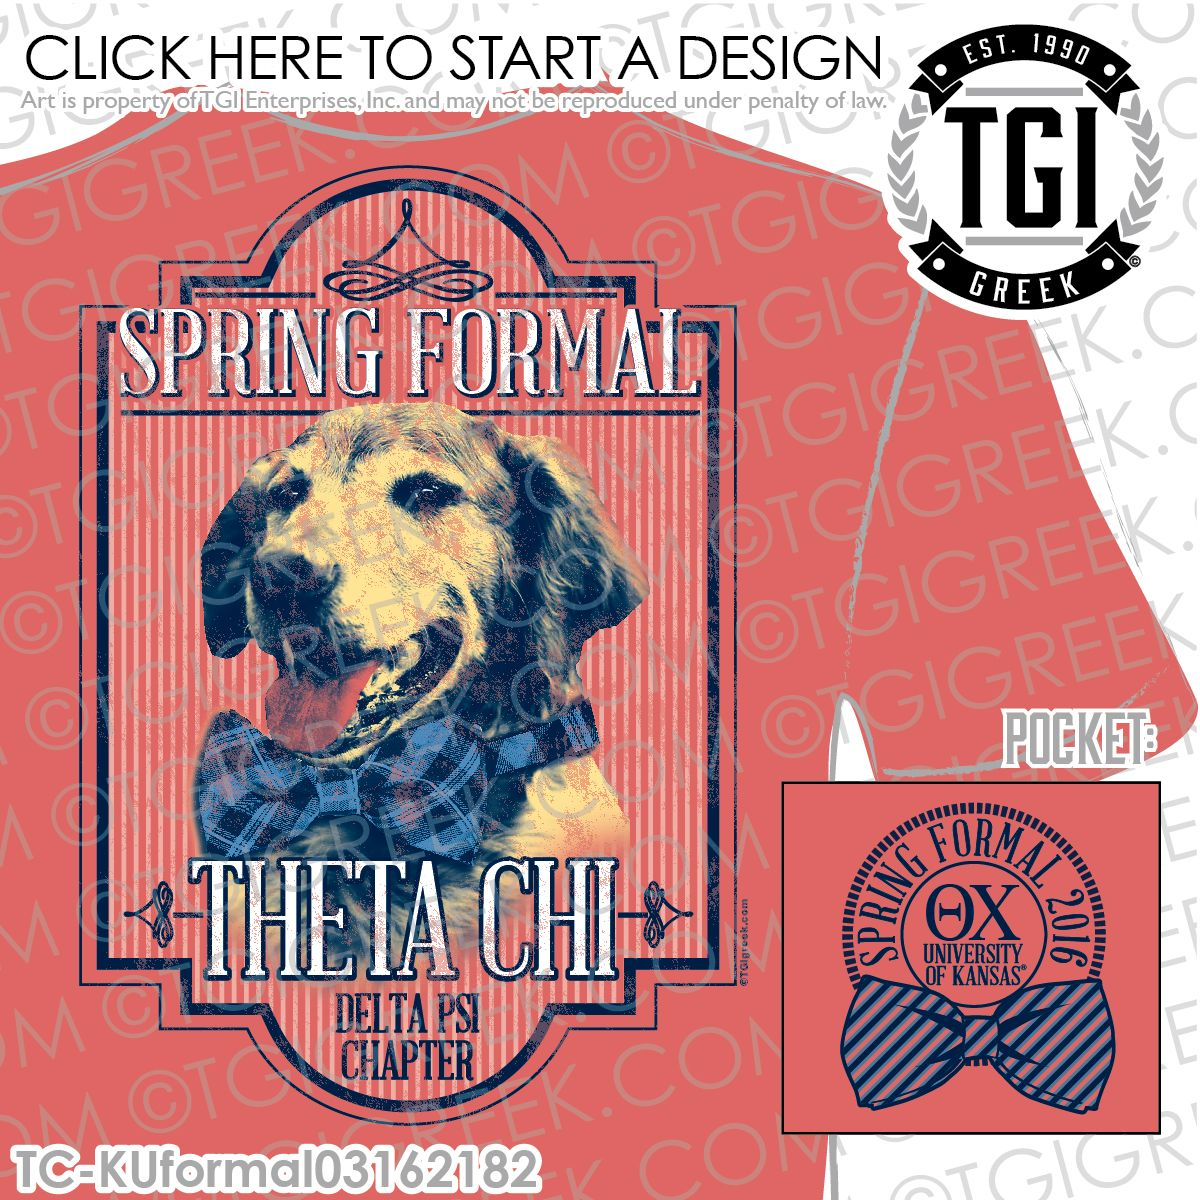 TGI Greek - Theta Chi - Formal - Greek Apparel #tgigreek #thetachi